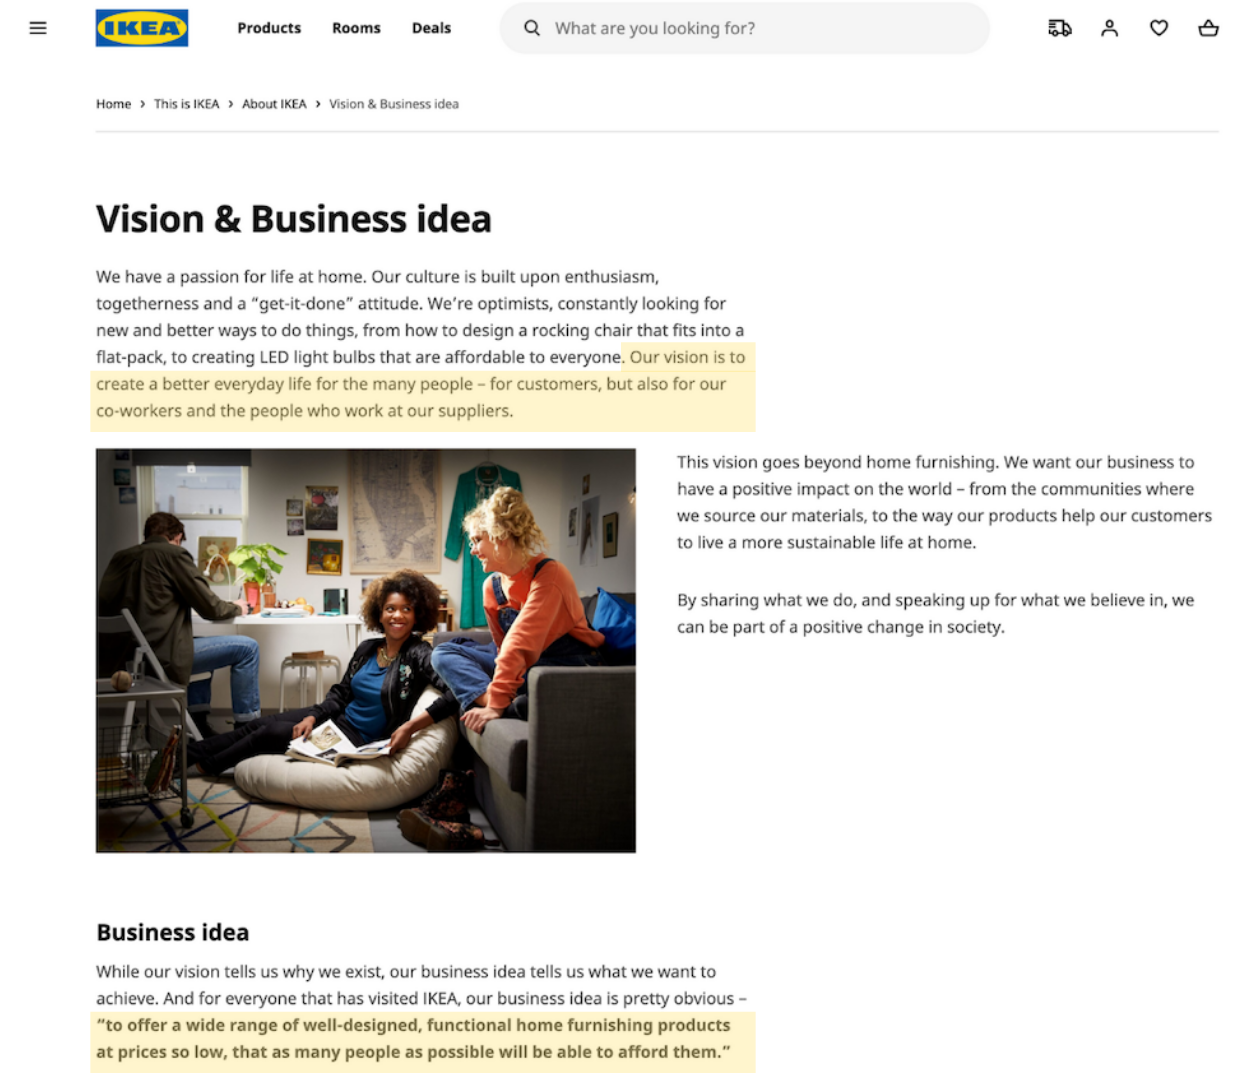 Ikea's brand mission and vision statements